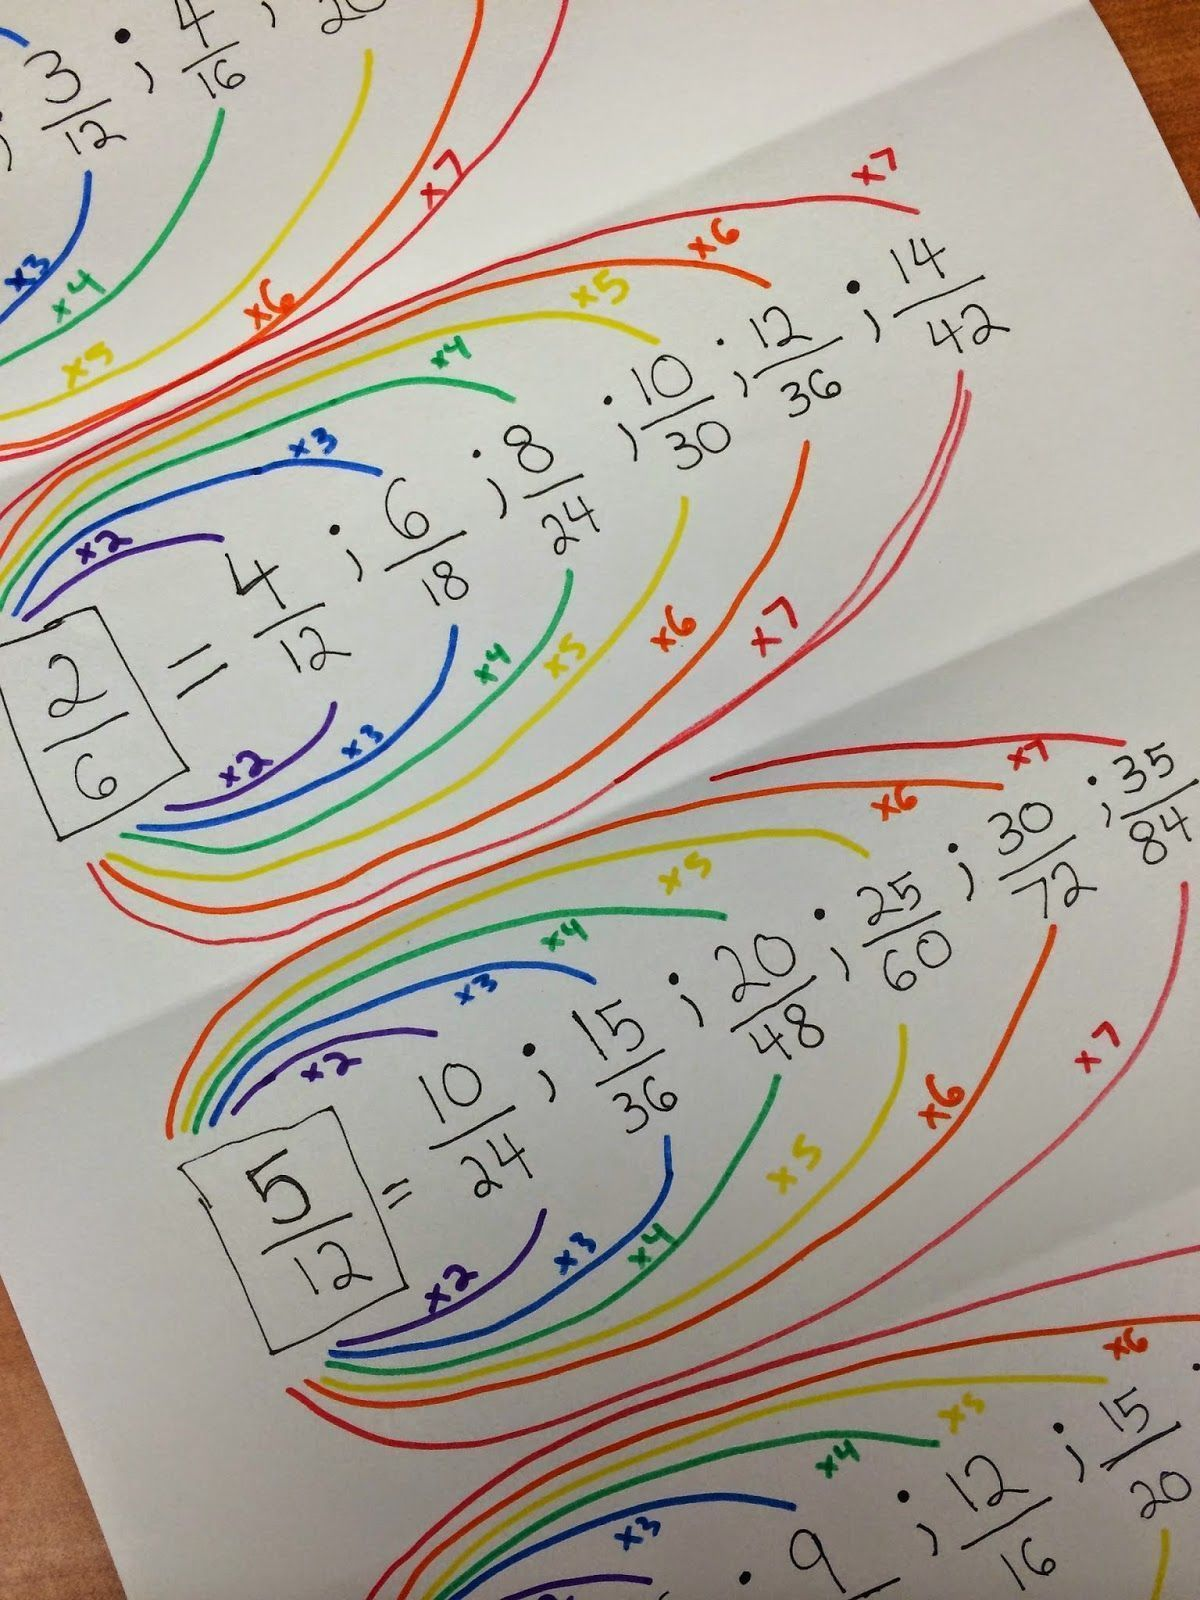 Equivalent Fraction Rainbows For St Patty S Day